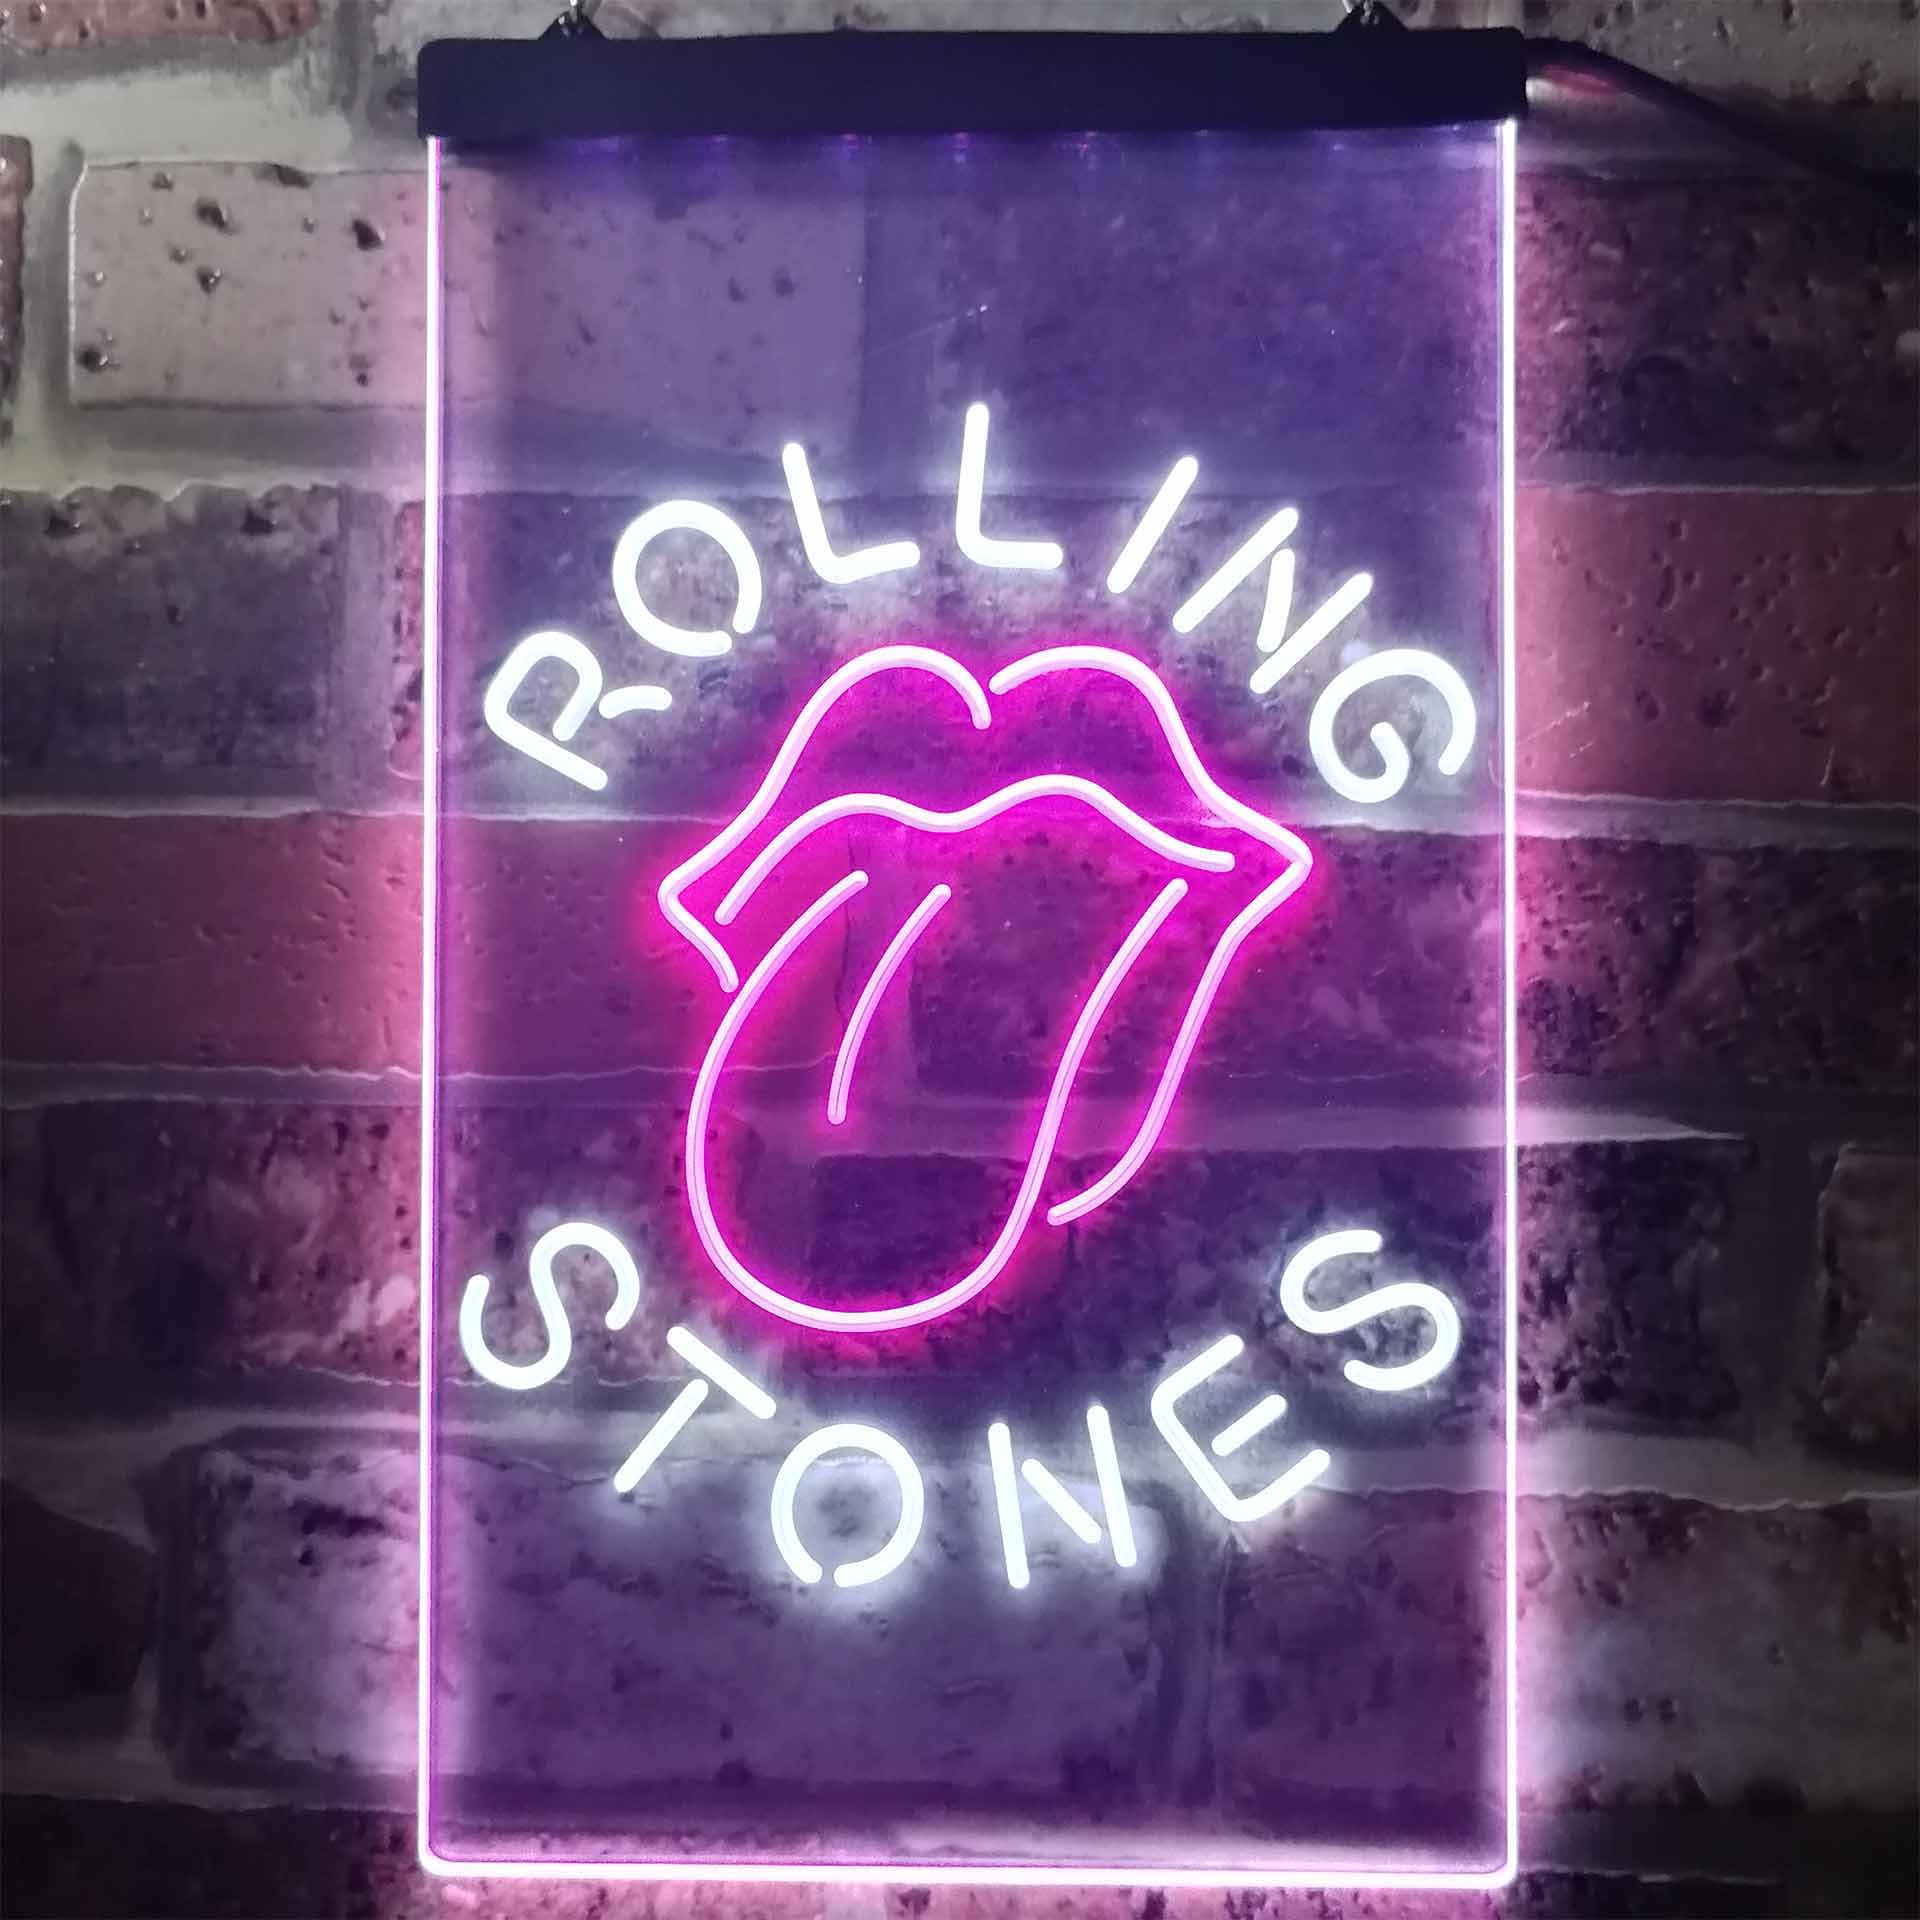 rolling Stones Tongue Dual Color LED Neon Sign ProLedSign